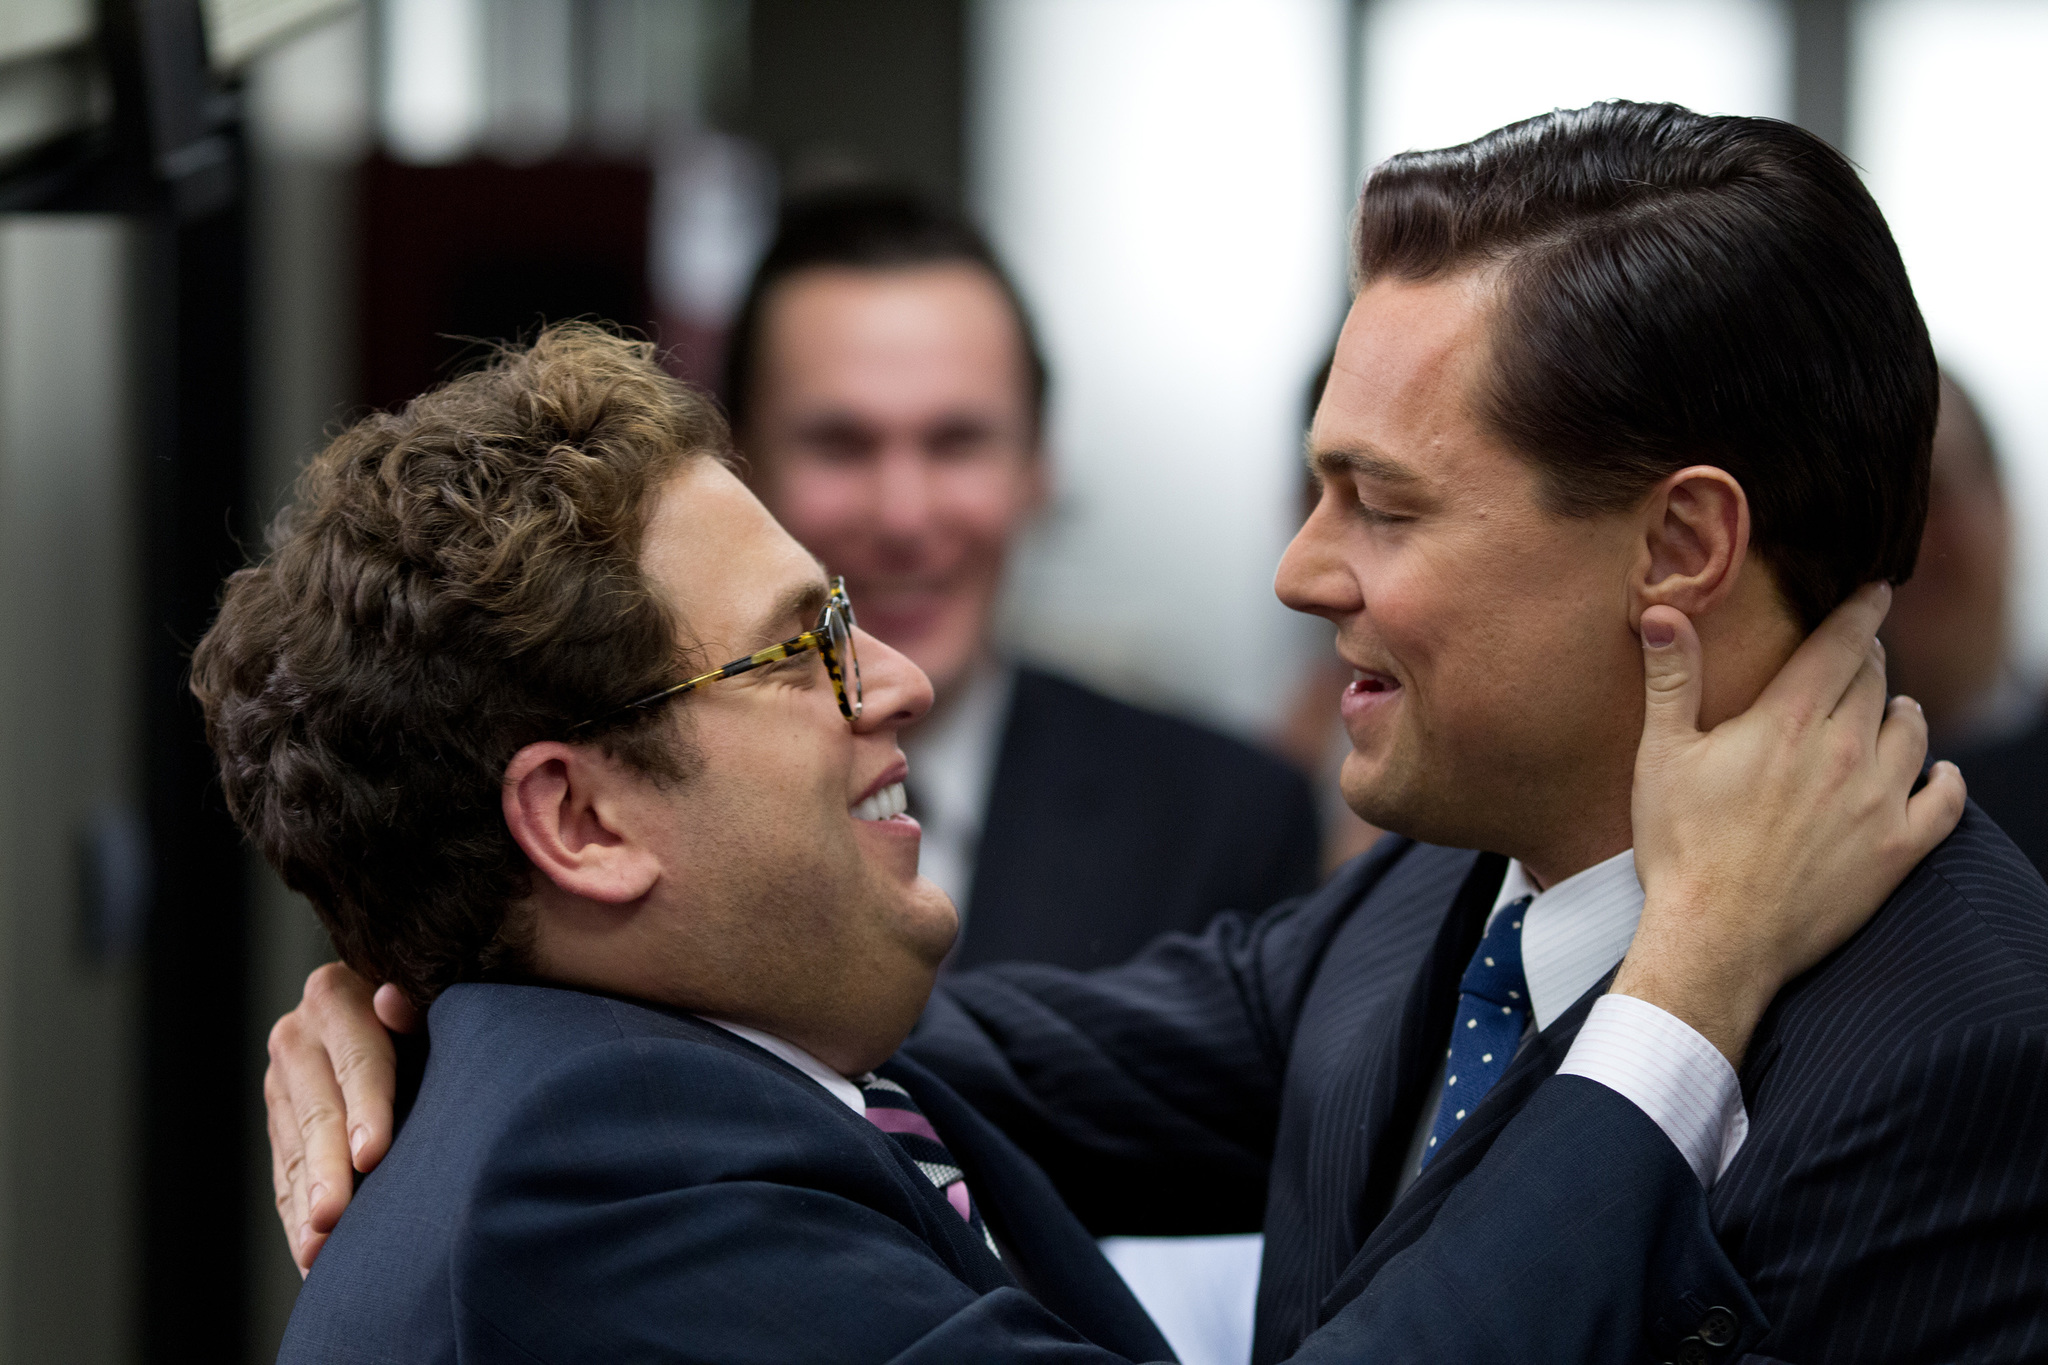 Jonah-Hill-and-Leonardo-DiCaprio-in-The-Wolf-of-Wall-Street